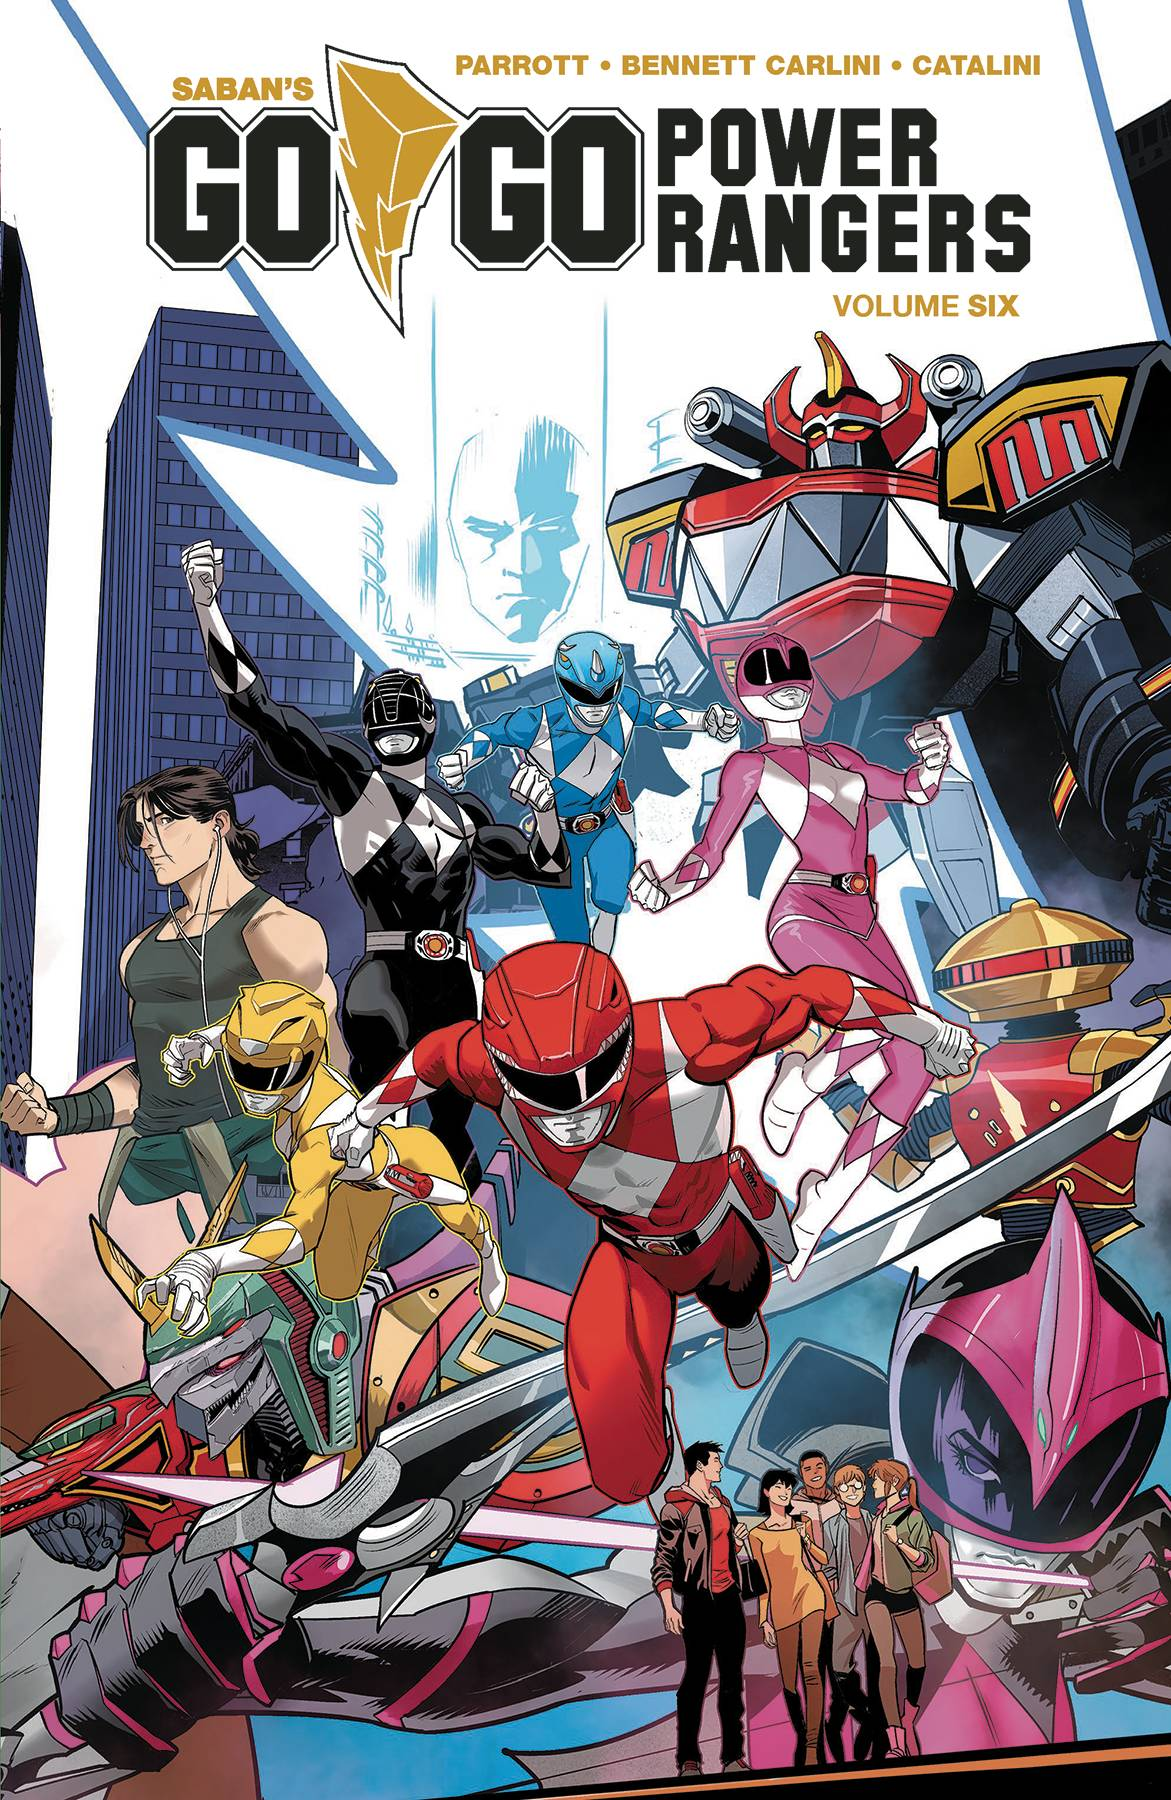 Go Go Power Rangers Volume 6